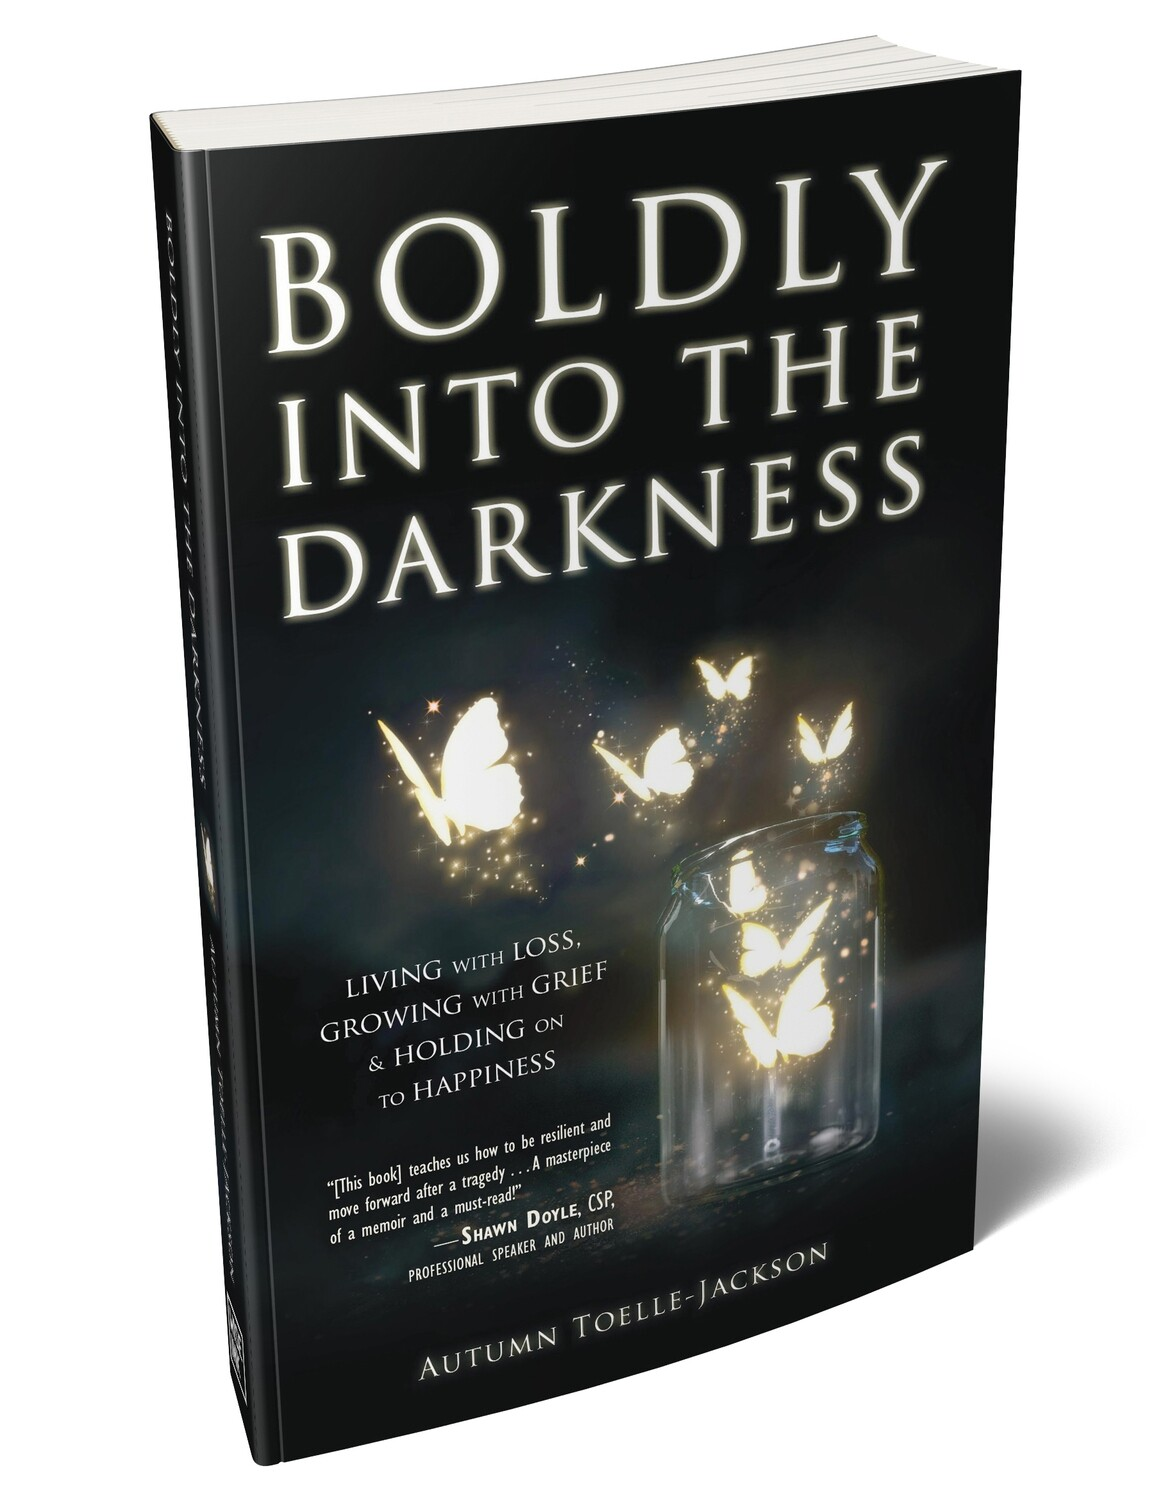 Boldly into the Darkness: Living with Loss, Growing with Grief & Holding onto Happiness (Paperback)